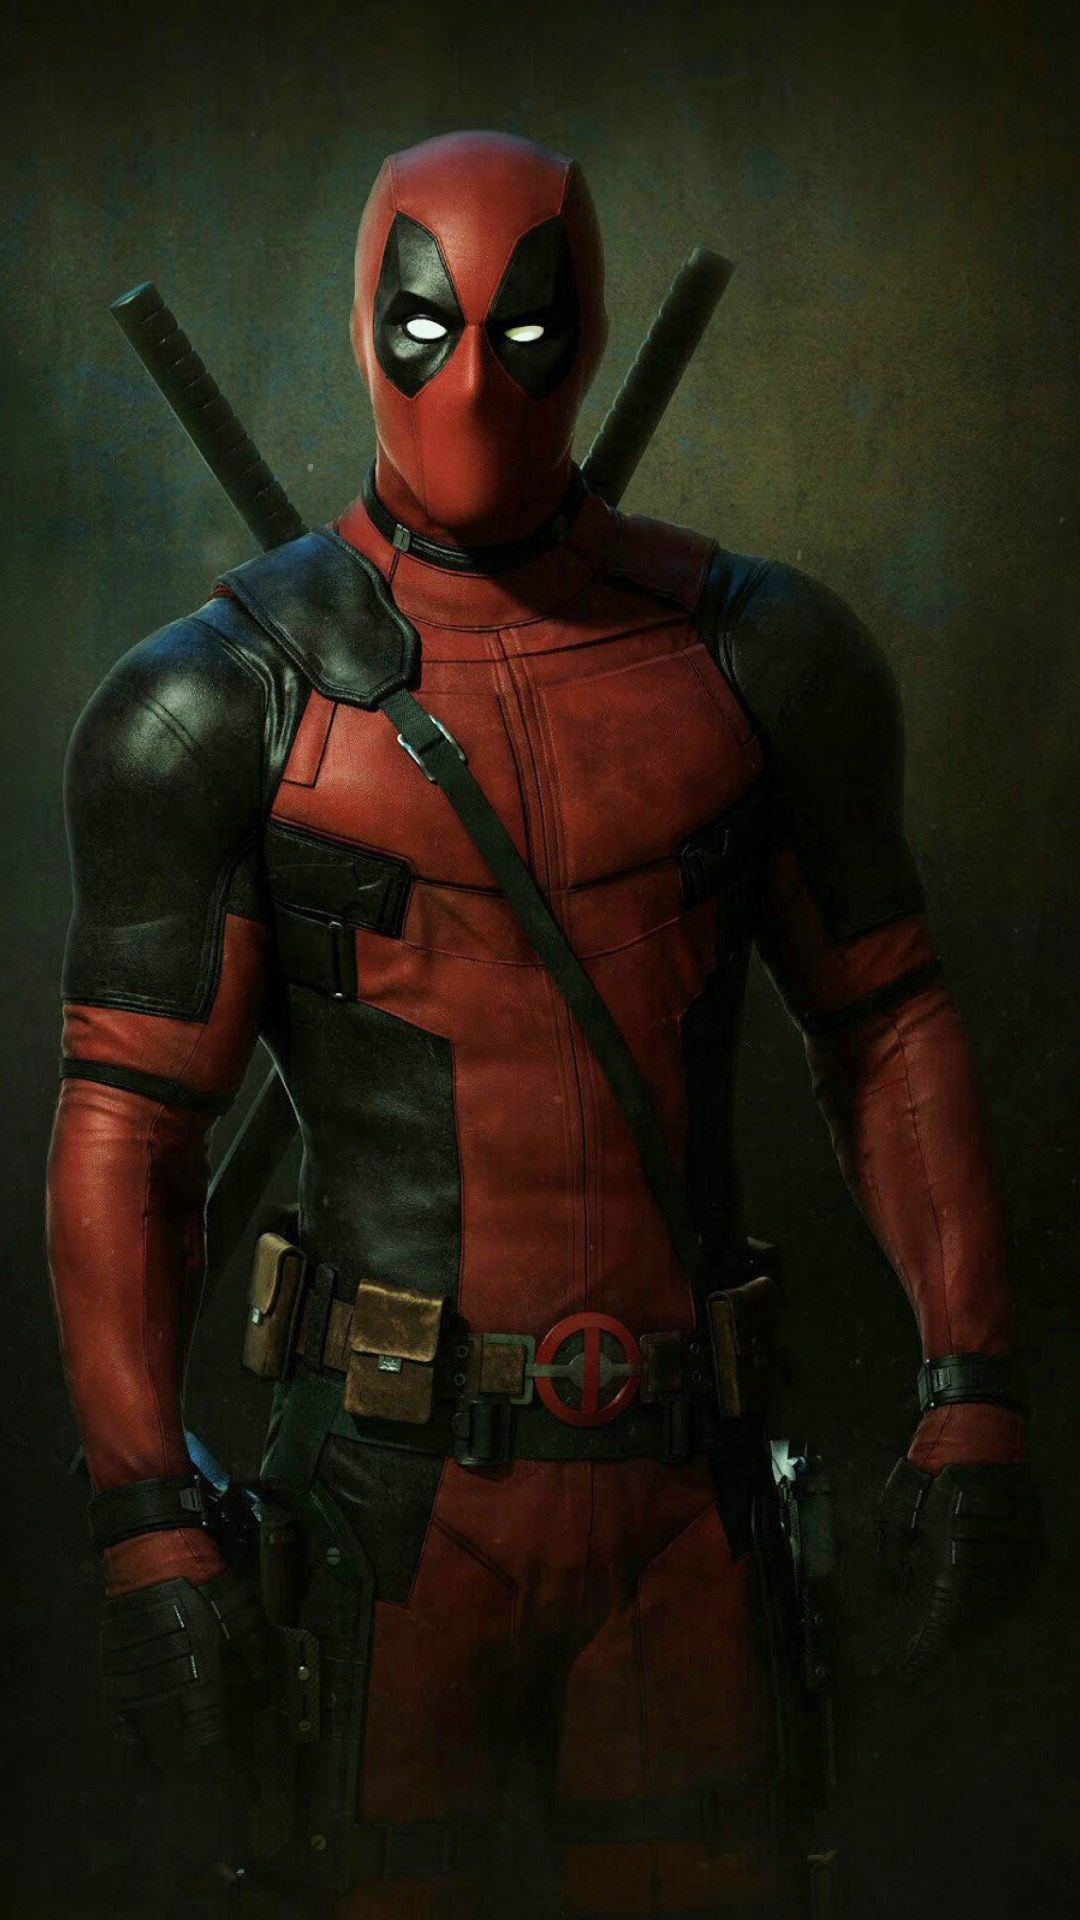 Deadpool Iphone Wallpaper Hd